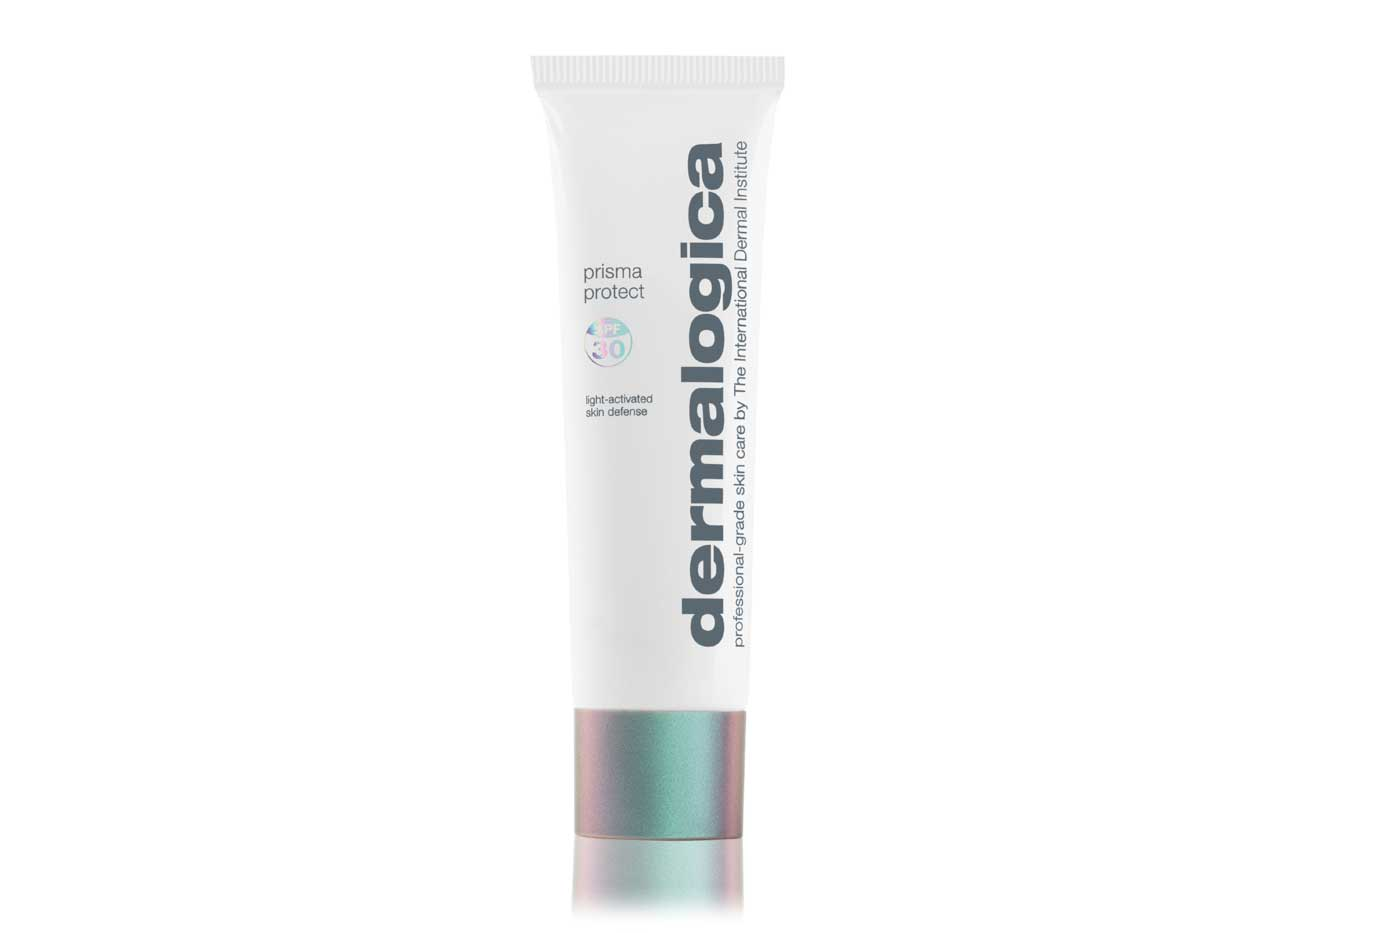 Dermalogica launches skincare product with dual benefits